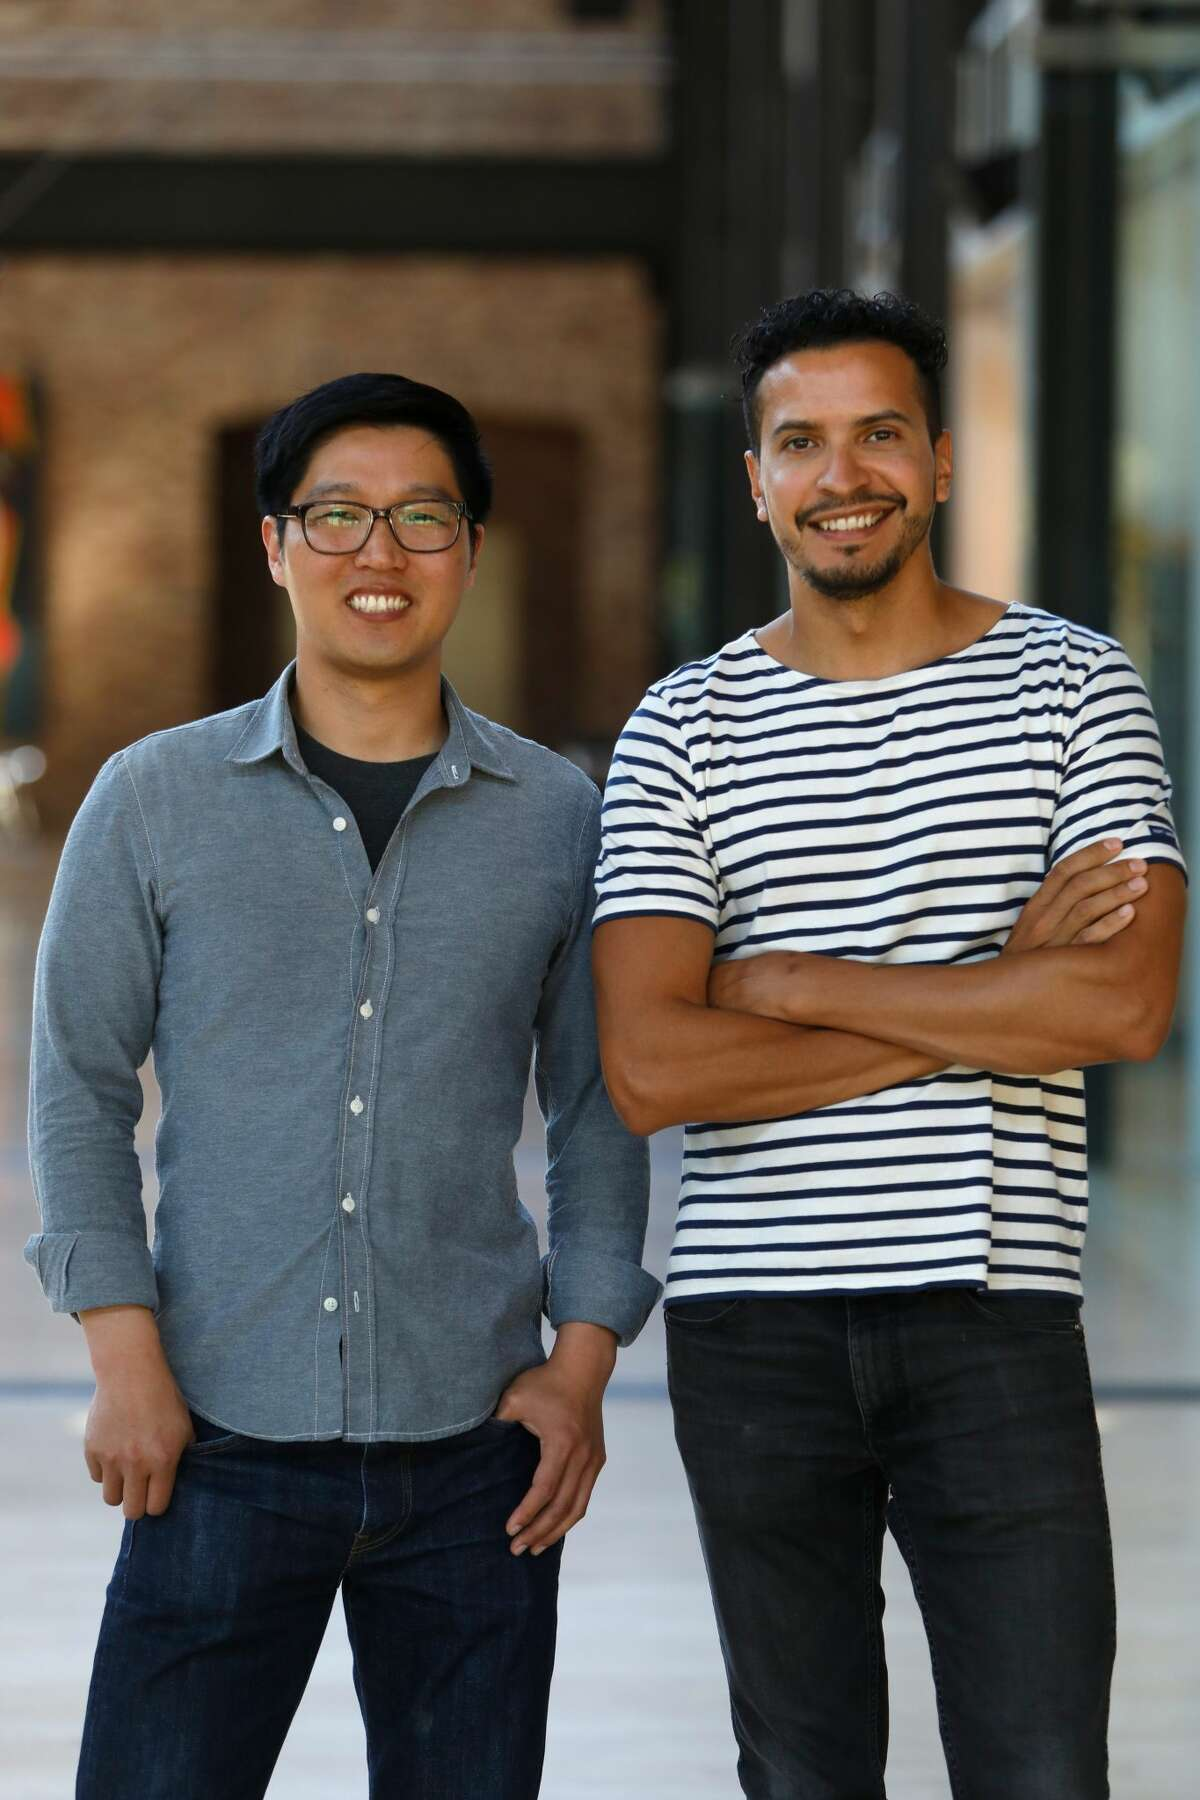 Jesus Martinez, producer, and Edwin Chang, director of the Pixar Spark short film